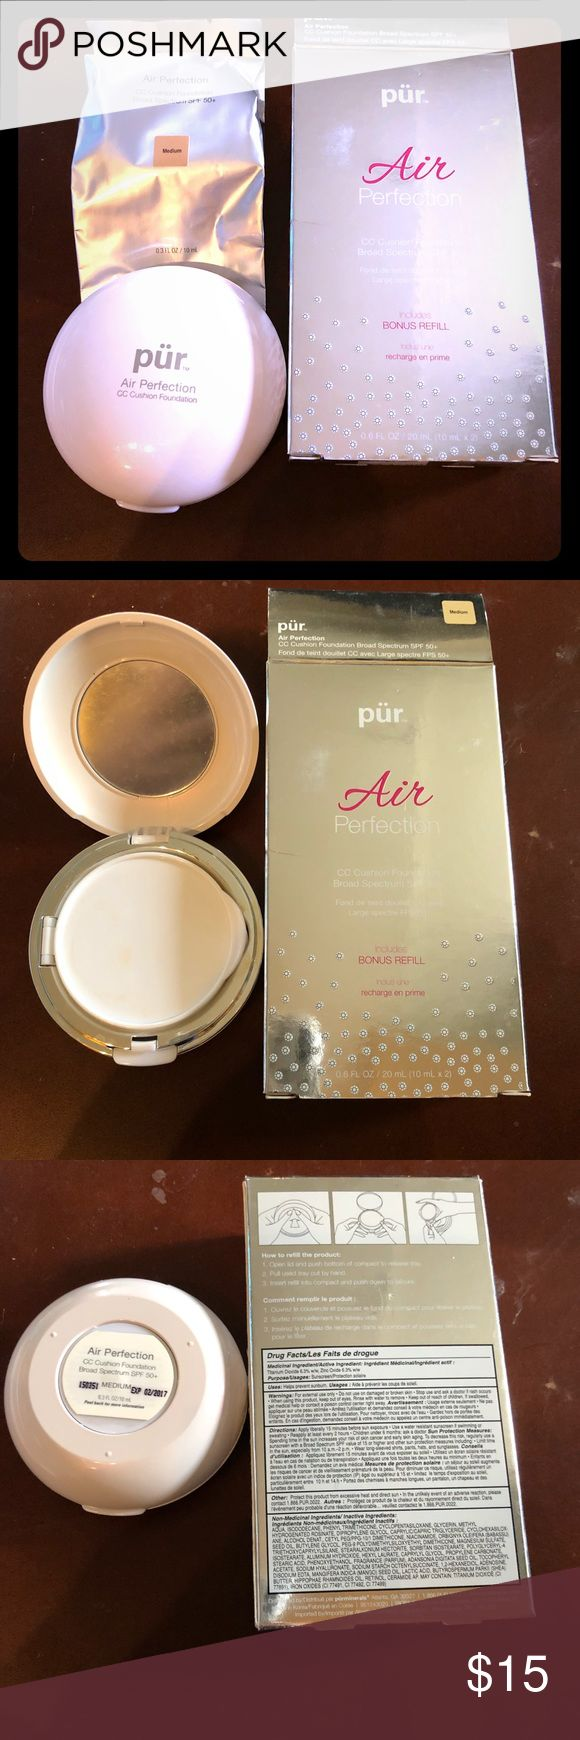 Pur Air Perfection Foundation Med w/ 1 new cushion Pur Air Perfection Foundation Med w/ 1 new cushion.  CC Cushion foundation SPF 50+.  Currently has the one that I tried before and ended up too dark for me.  I will remove the old one and send with sealed Cushion! Pur Minerals Makeup Foundation